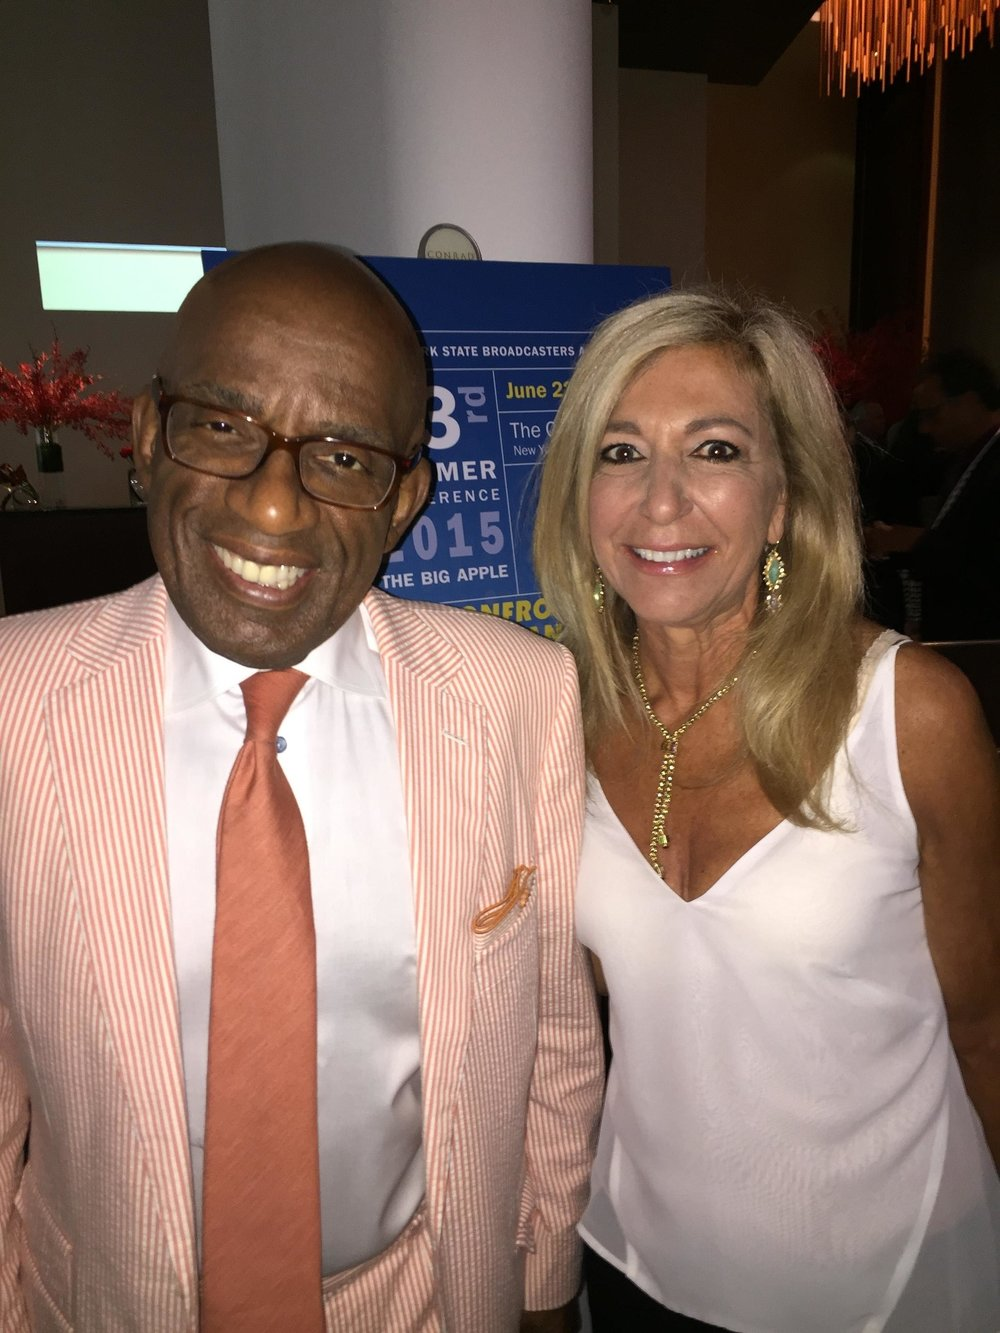 Judge DiMango with Al Roker